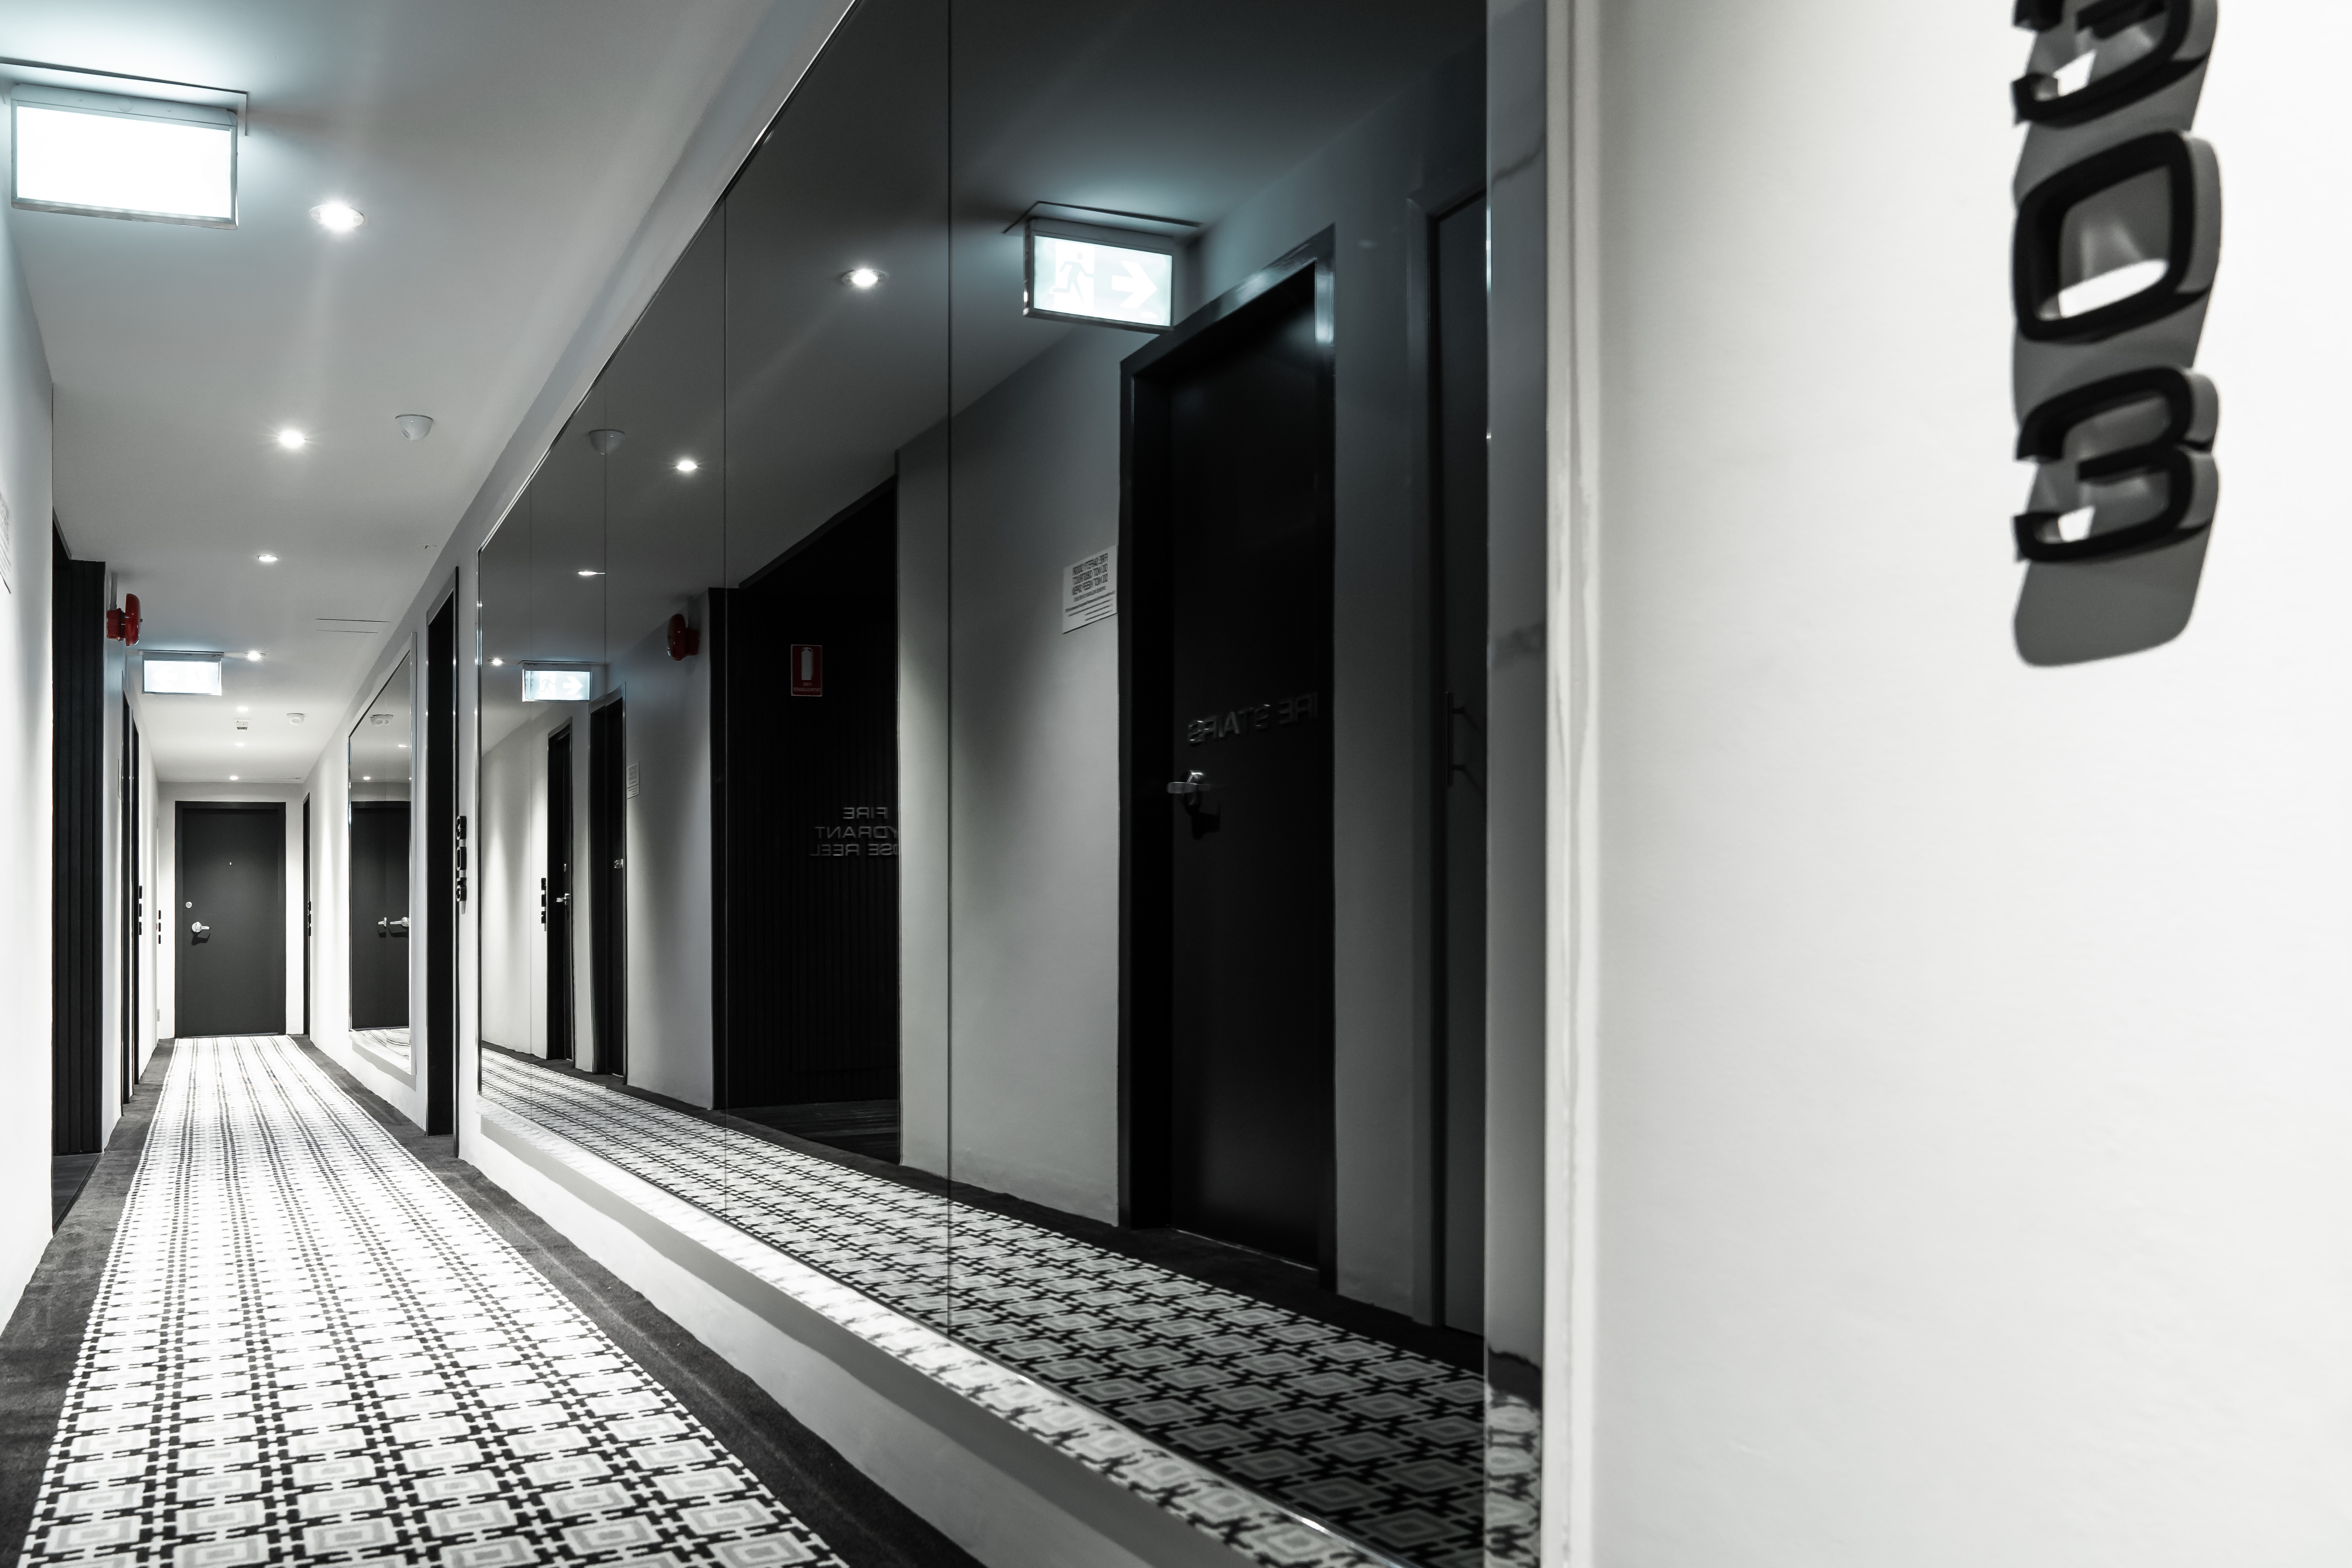 Sydney apartment building interior designer hallways common areas